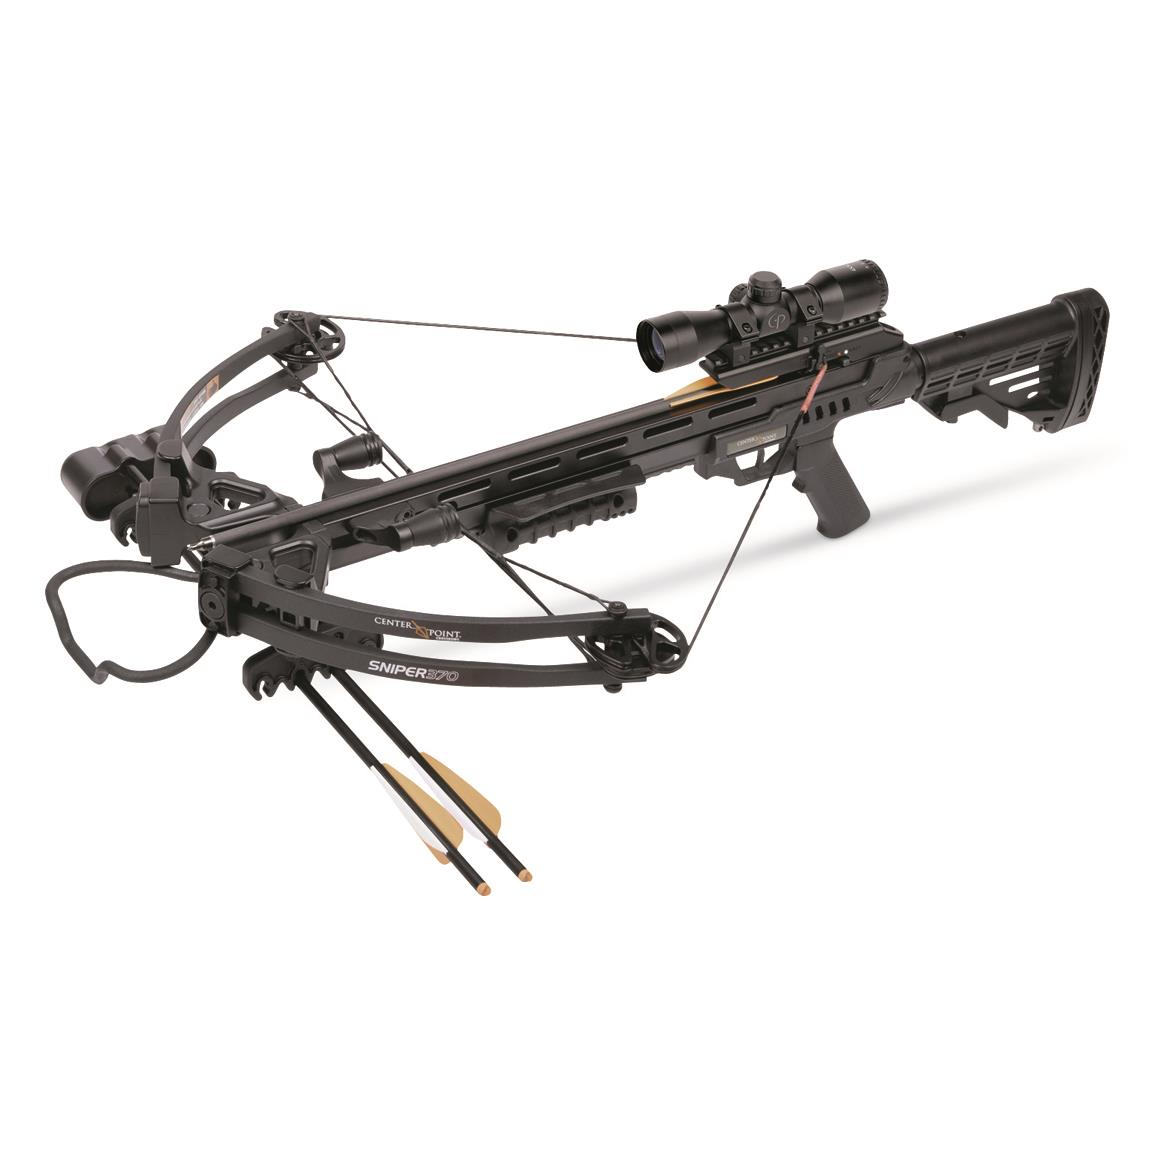 CenterPoint Sniper 370 Crossbow Package, 4x32mm Scope